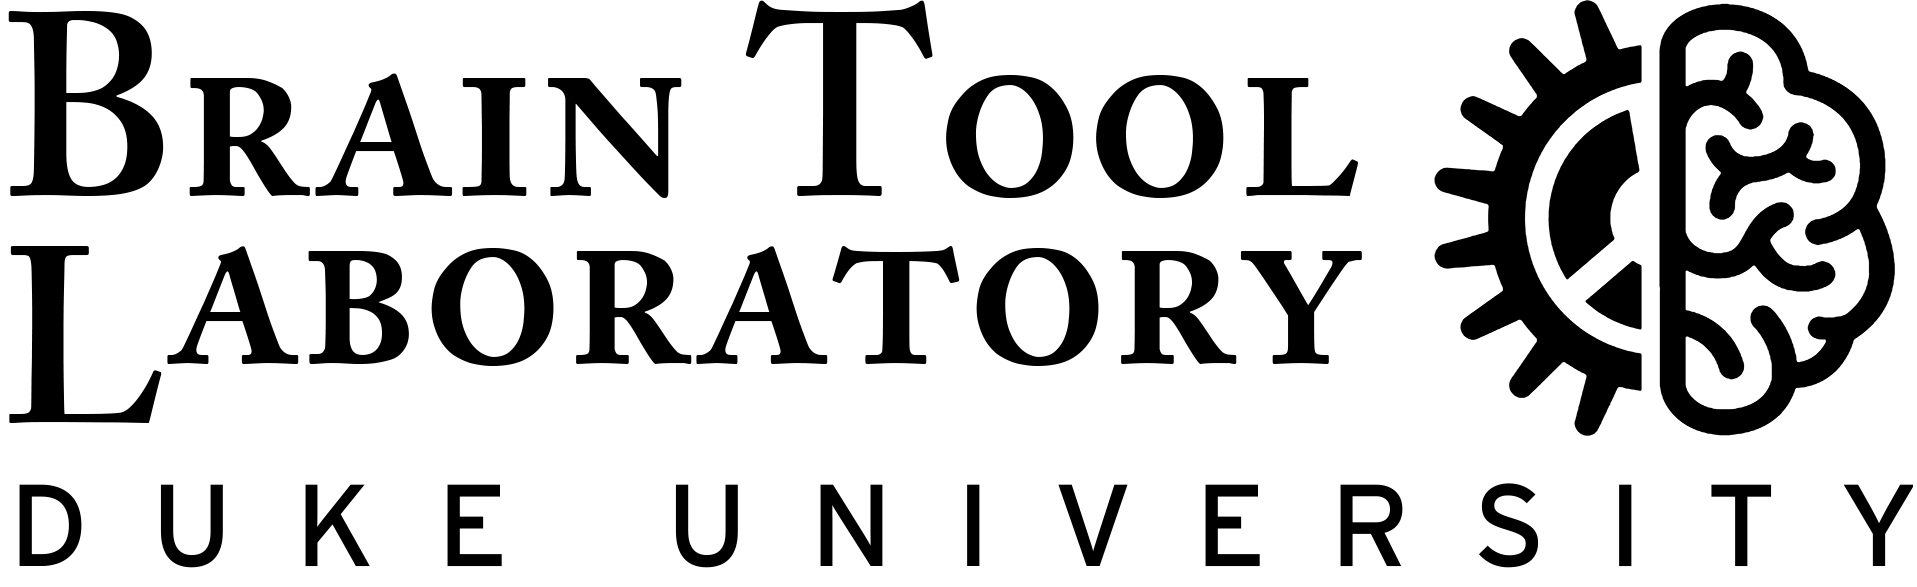 brain tool lab logo